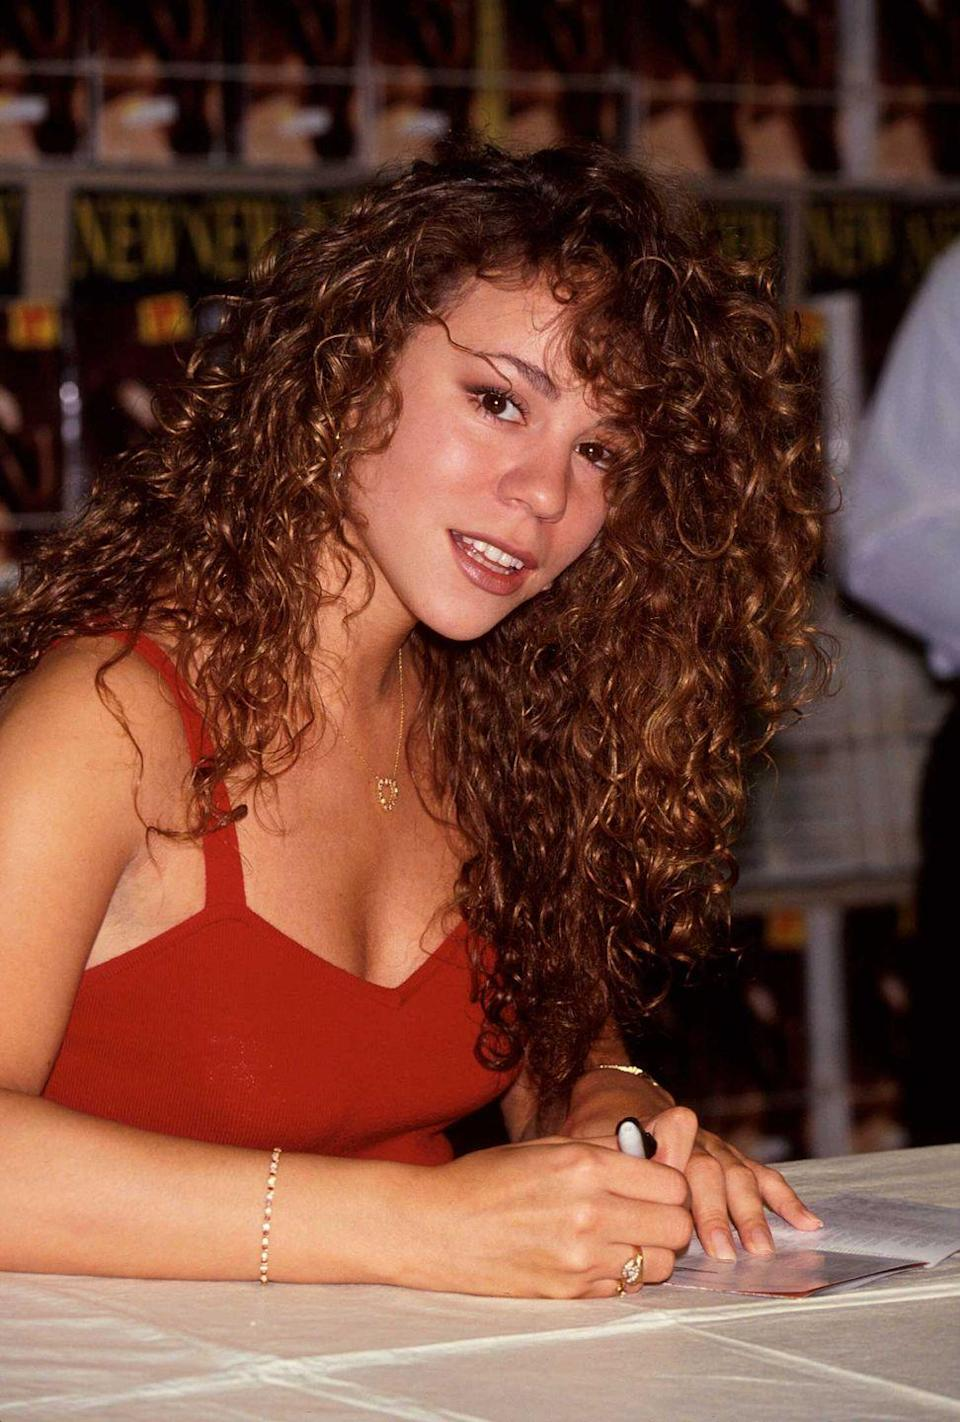 <p>Mariah Carey in 1991, looking perfect as she signs autographs. </p>